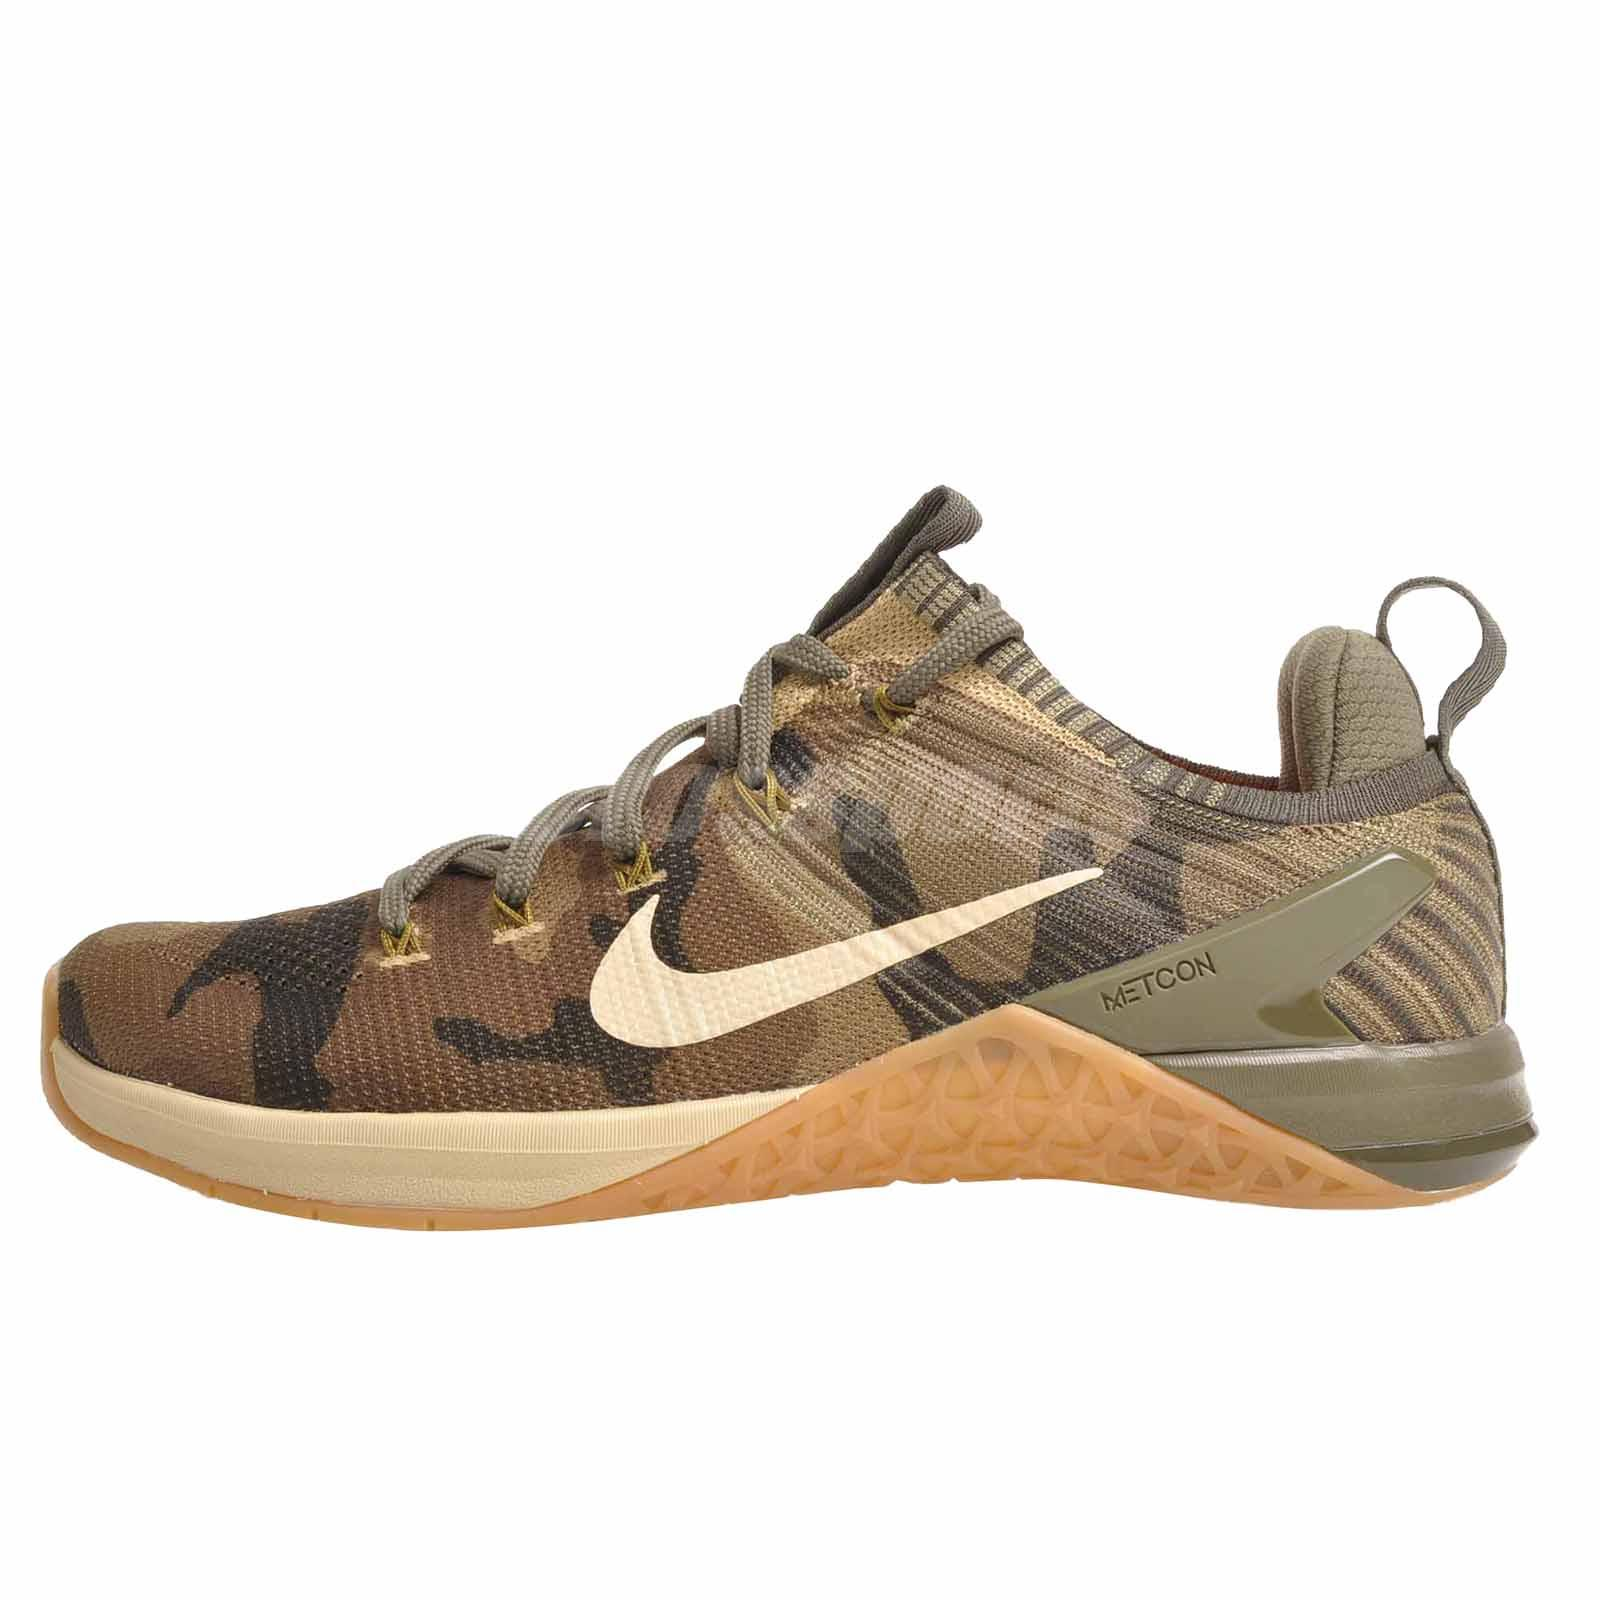 a8eb10693fd4 Nike Metcon DSX Flyknit 2 Mens Cross Training Shoes Trainers Olive  924423-300